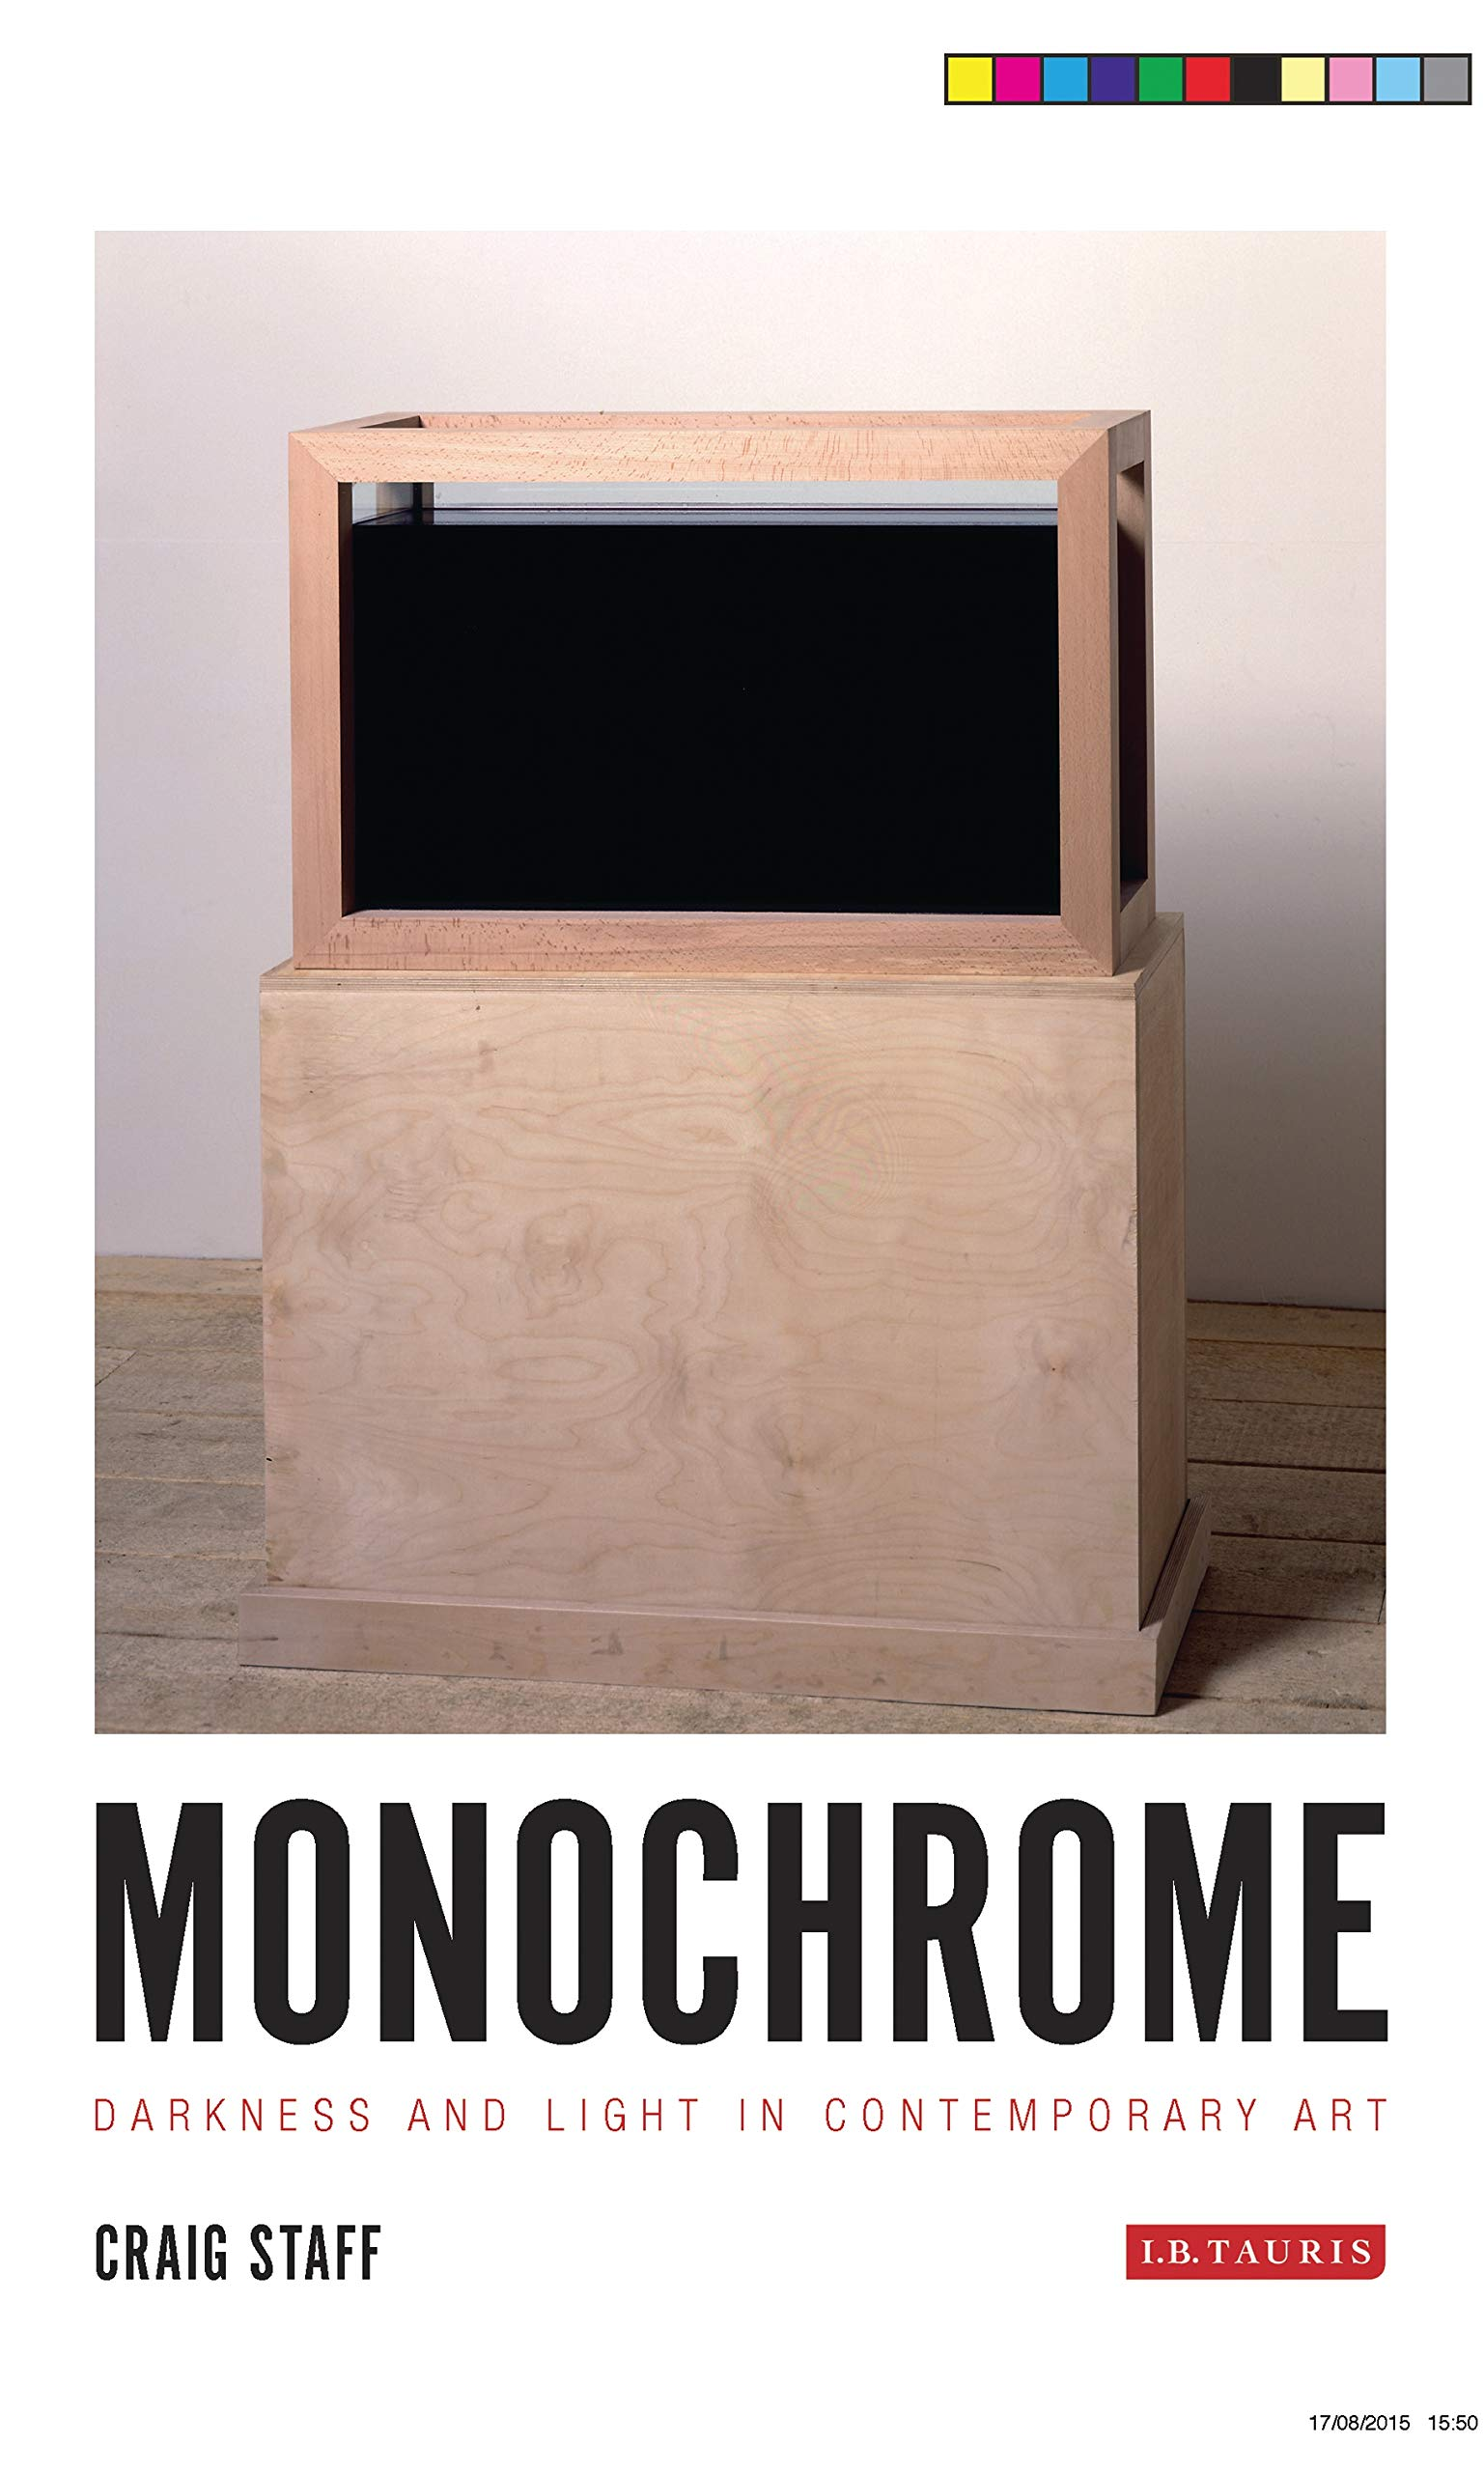 Monochrome: Darkness and Light in Contemporary Art (International Library of Modern and Contemporary Art)